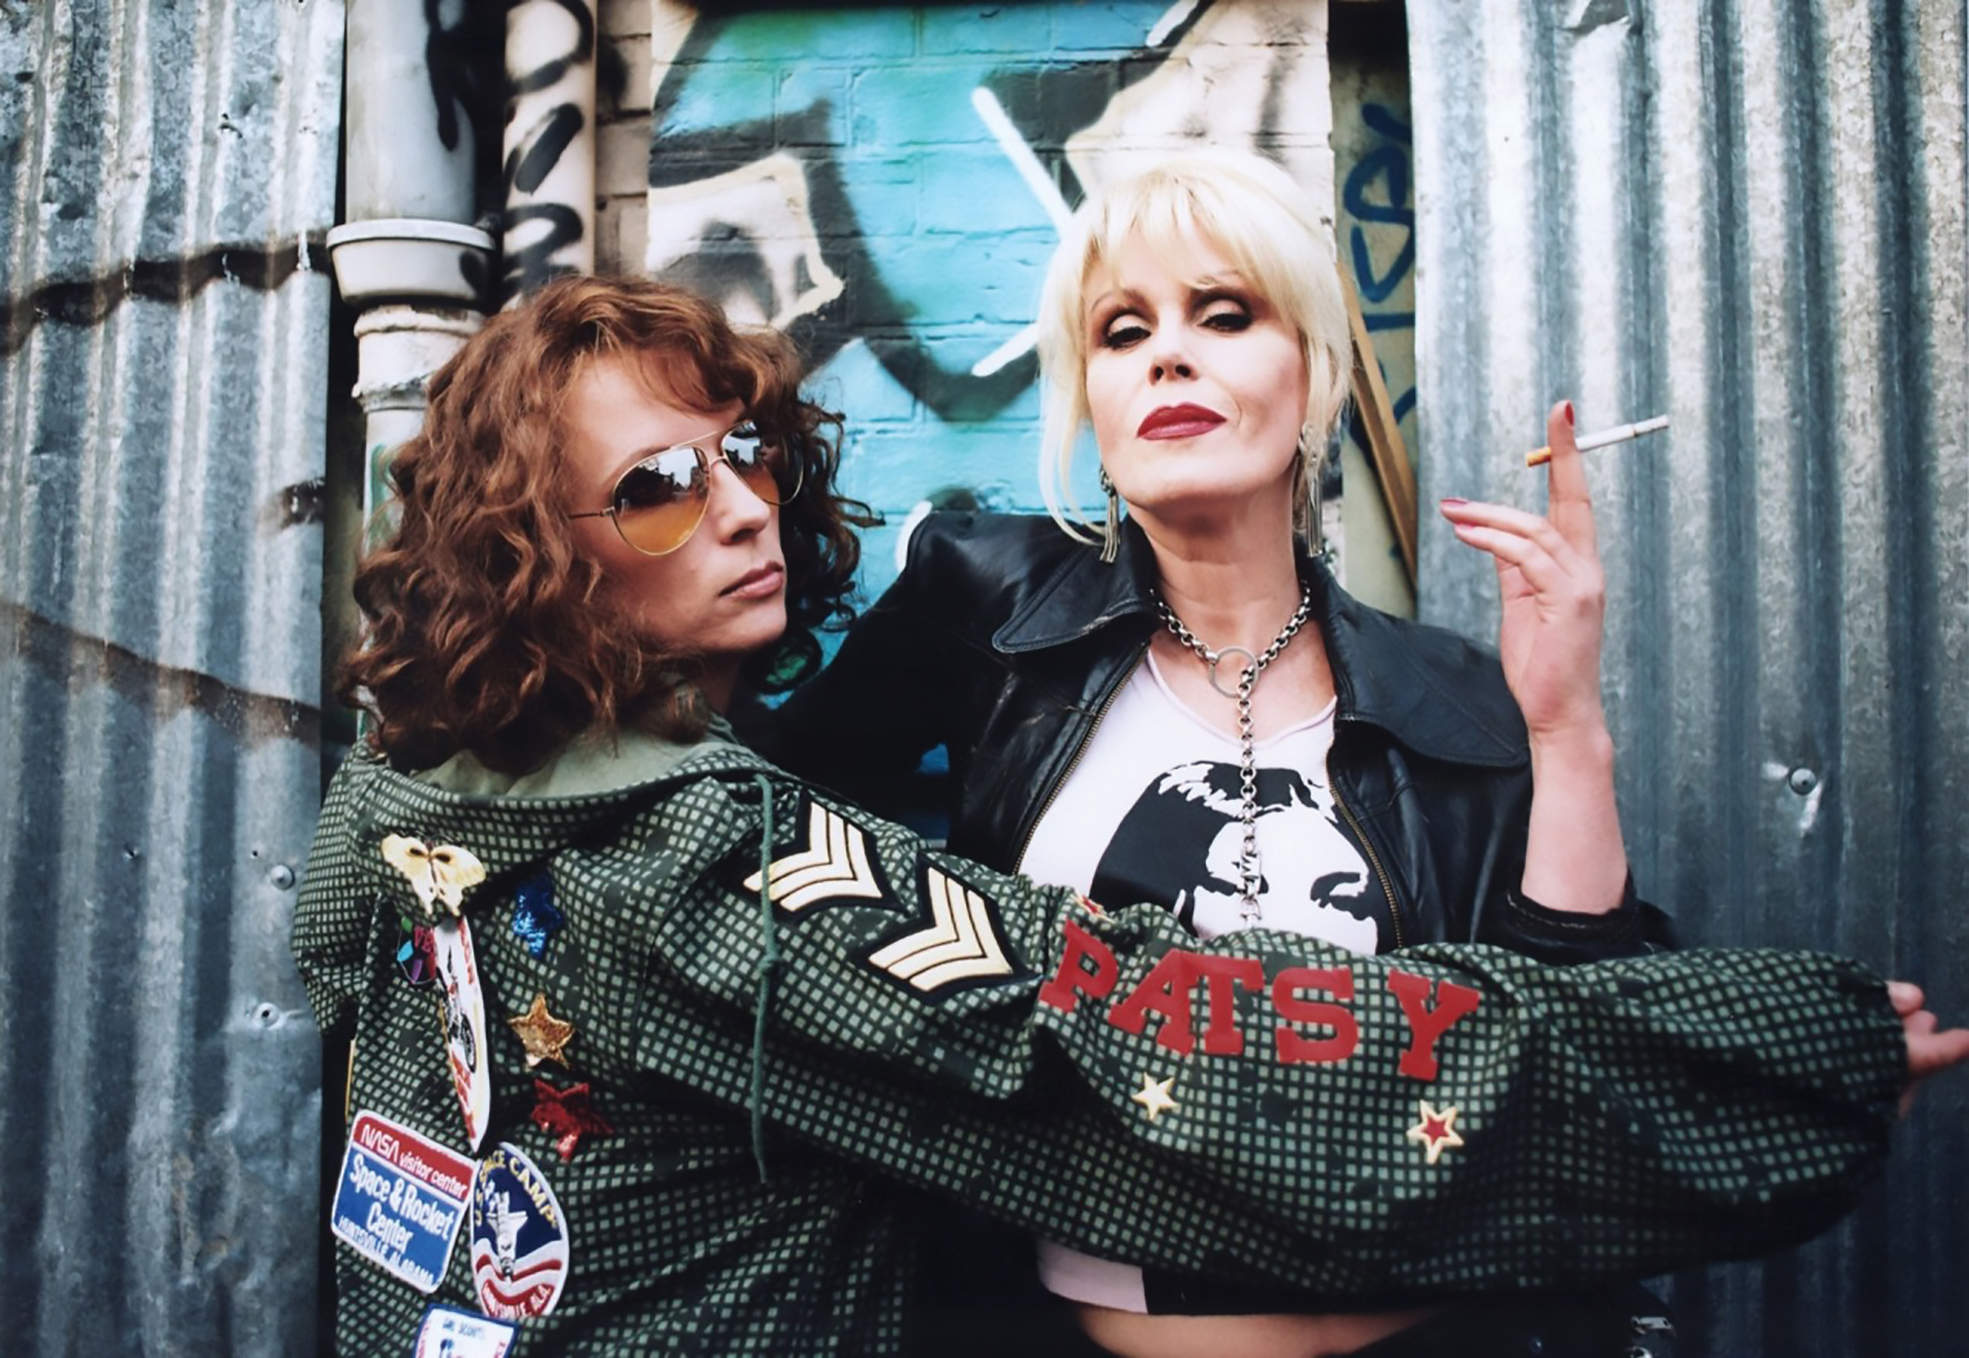 The original riot girls: the sparkling legacy of Absolutely Fabulous